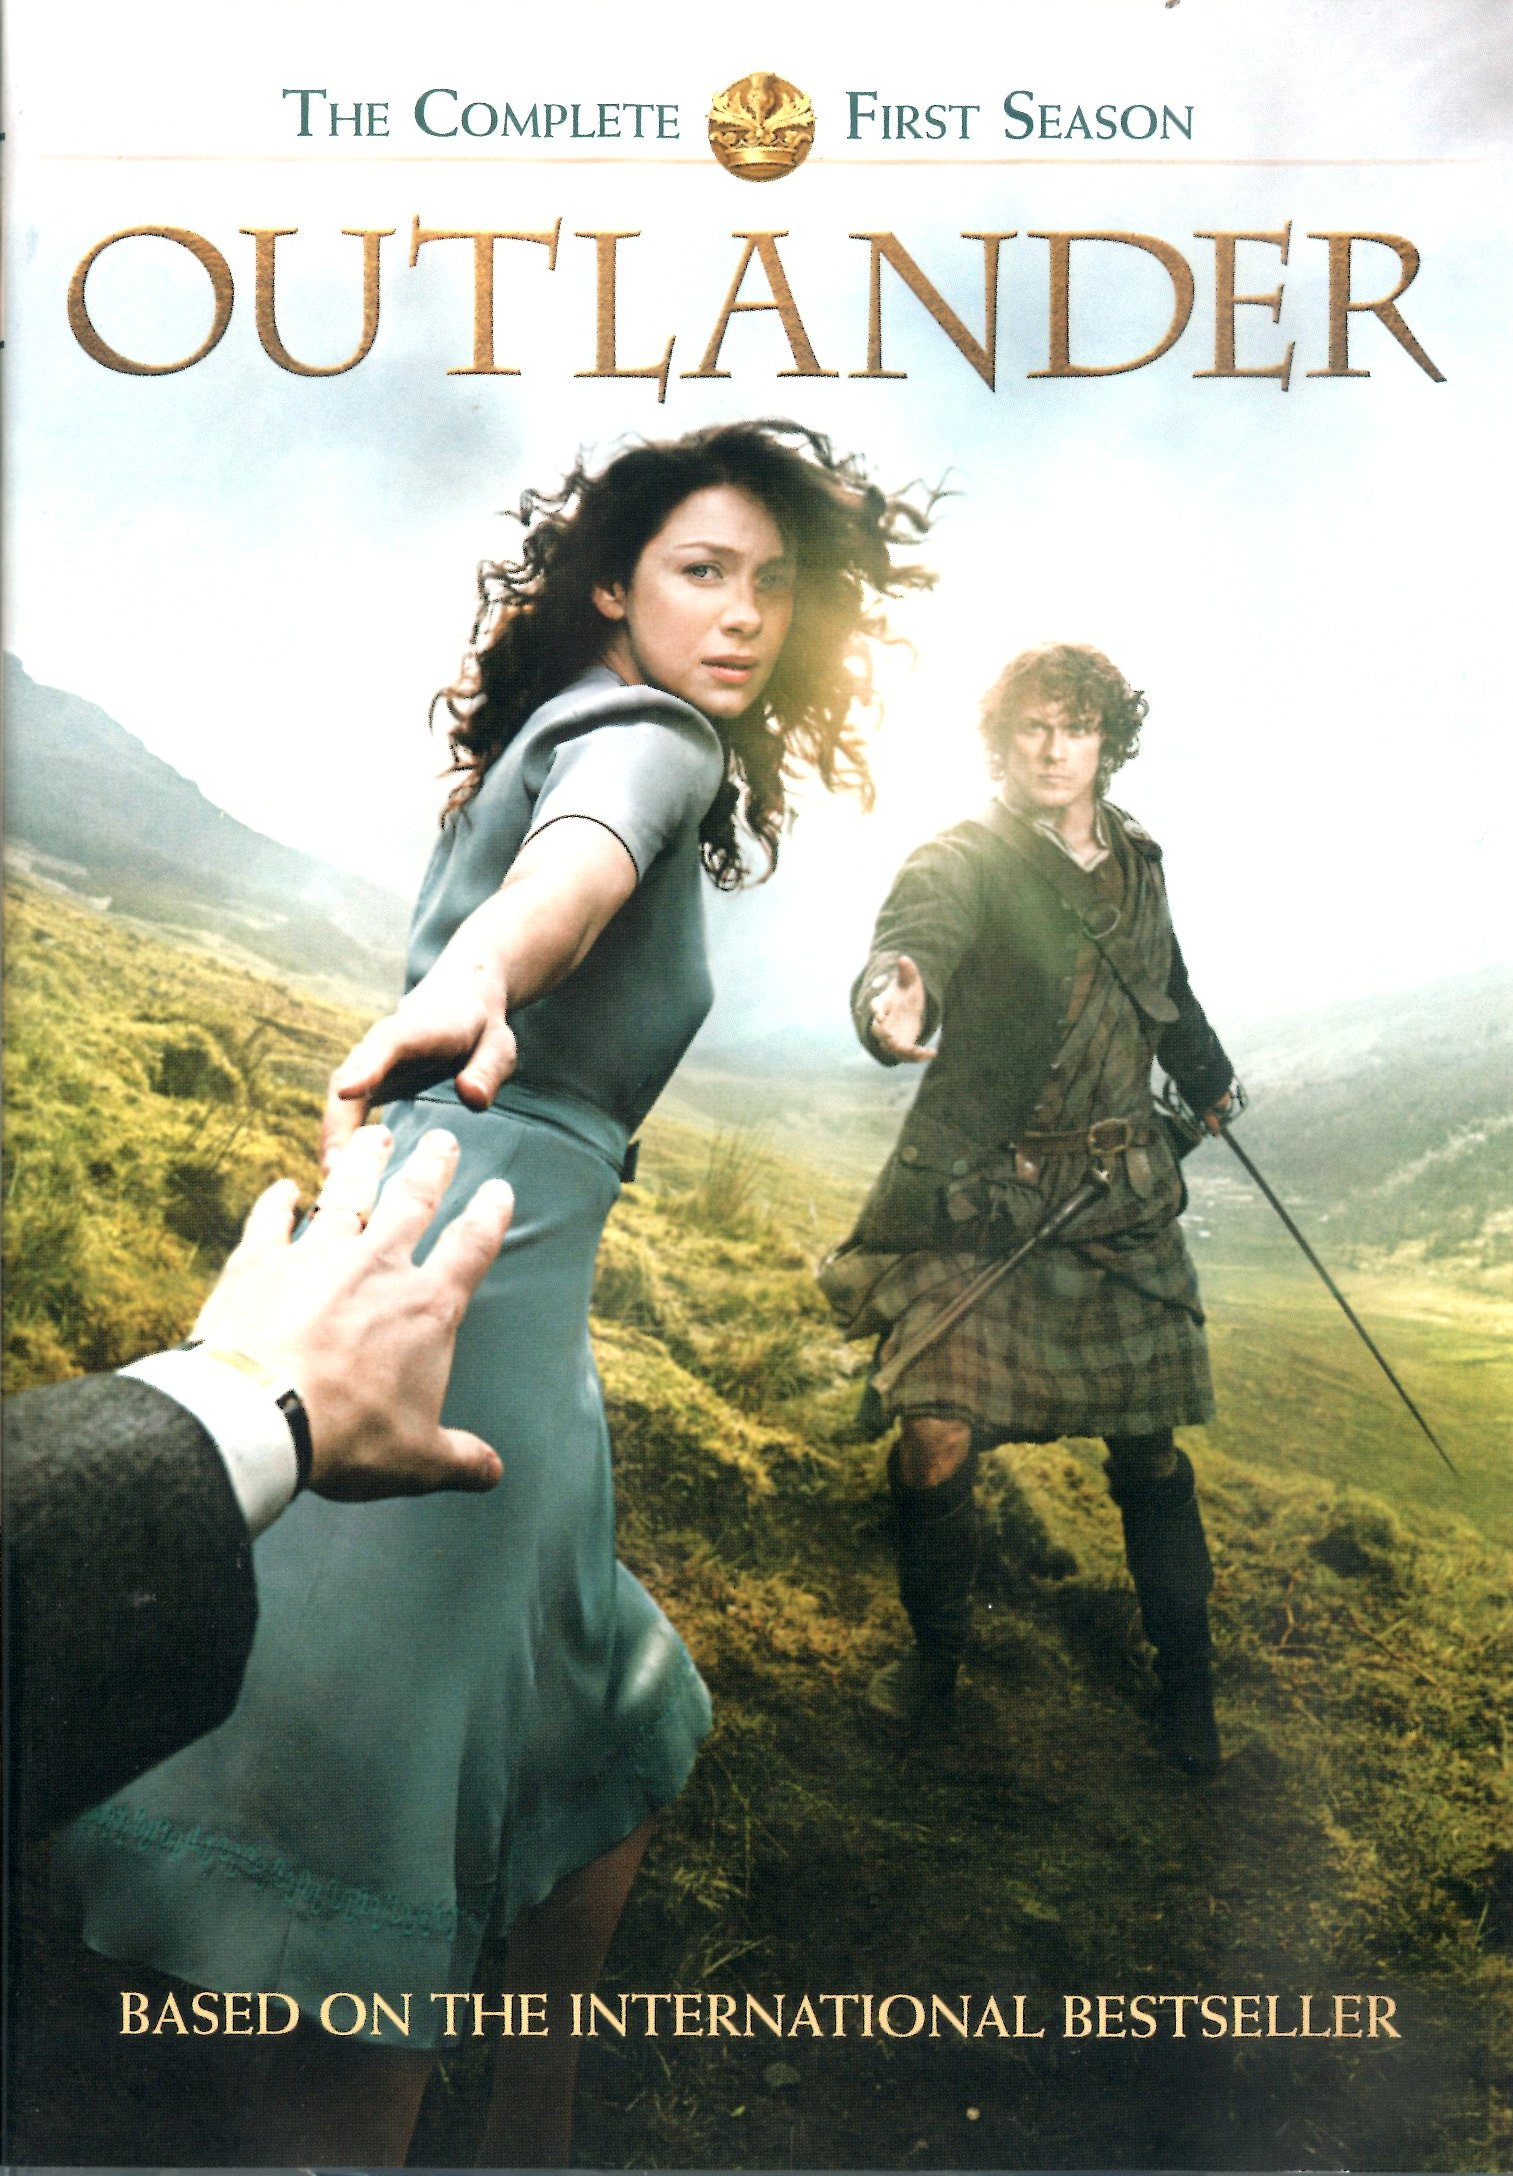 Outlander(家用版) the complete first season = 異鄉人 : 古戰場傳奇. 第一季